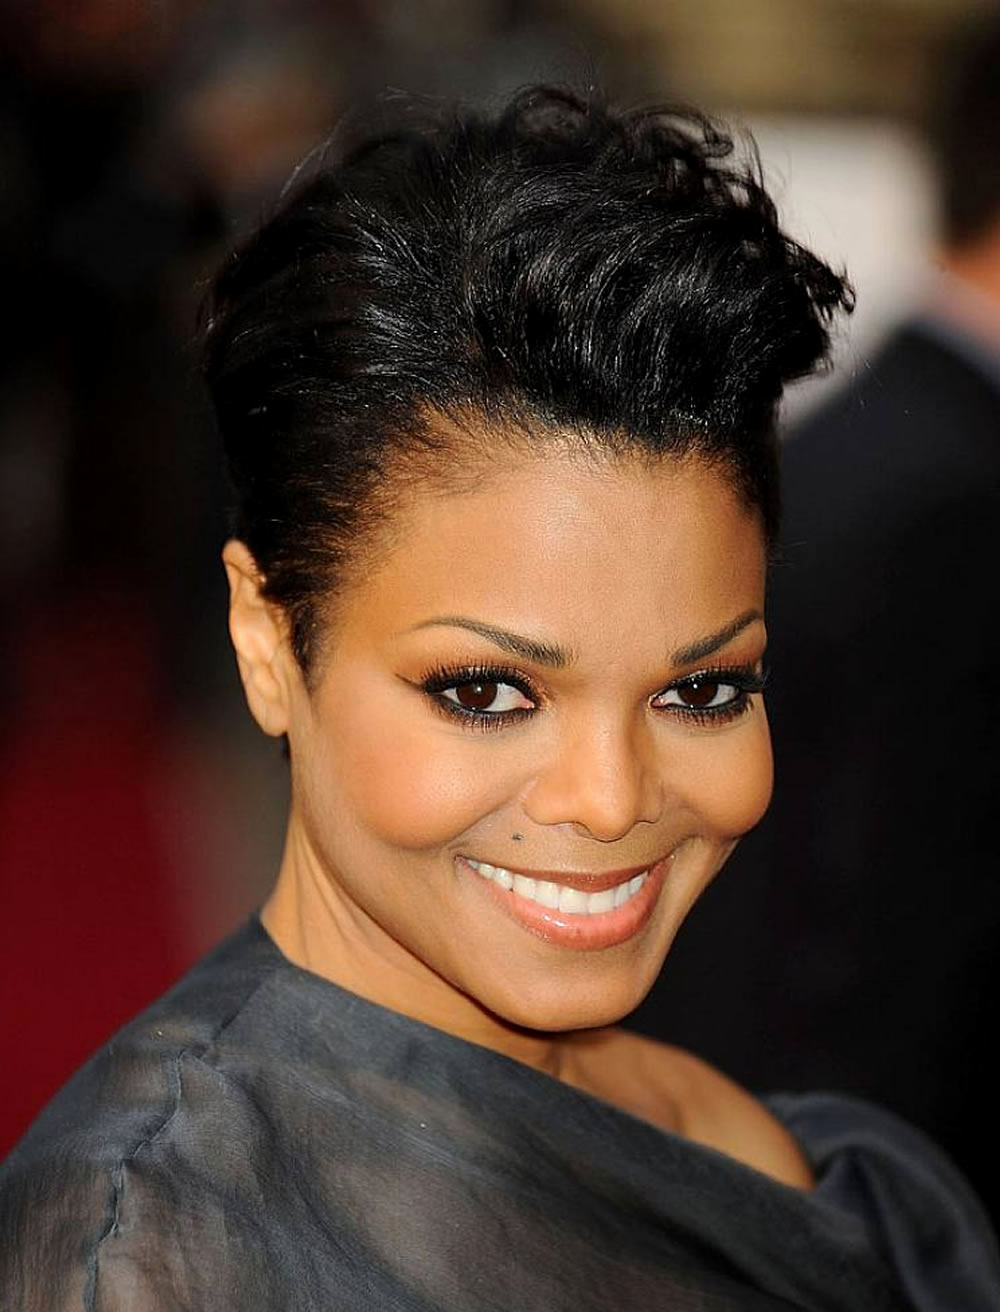 African American Short Natural Hairstyles For Round Faces African For Short Haircuts For Round Faces Black Women (View 24 of 25)